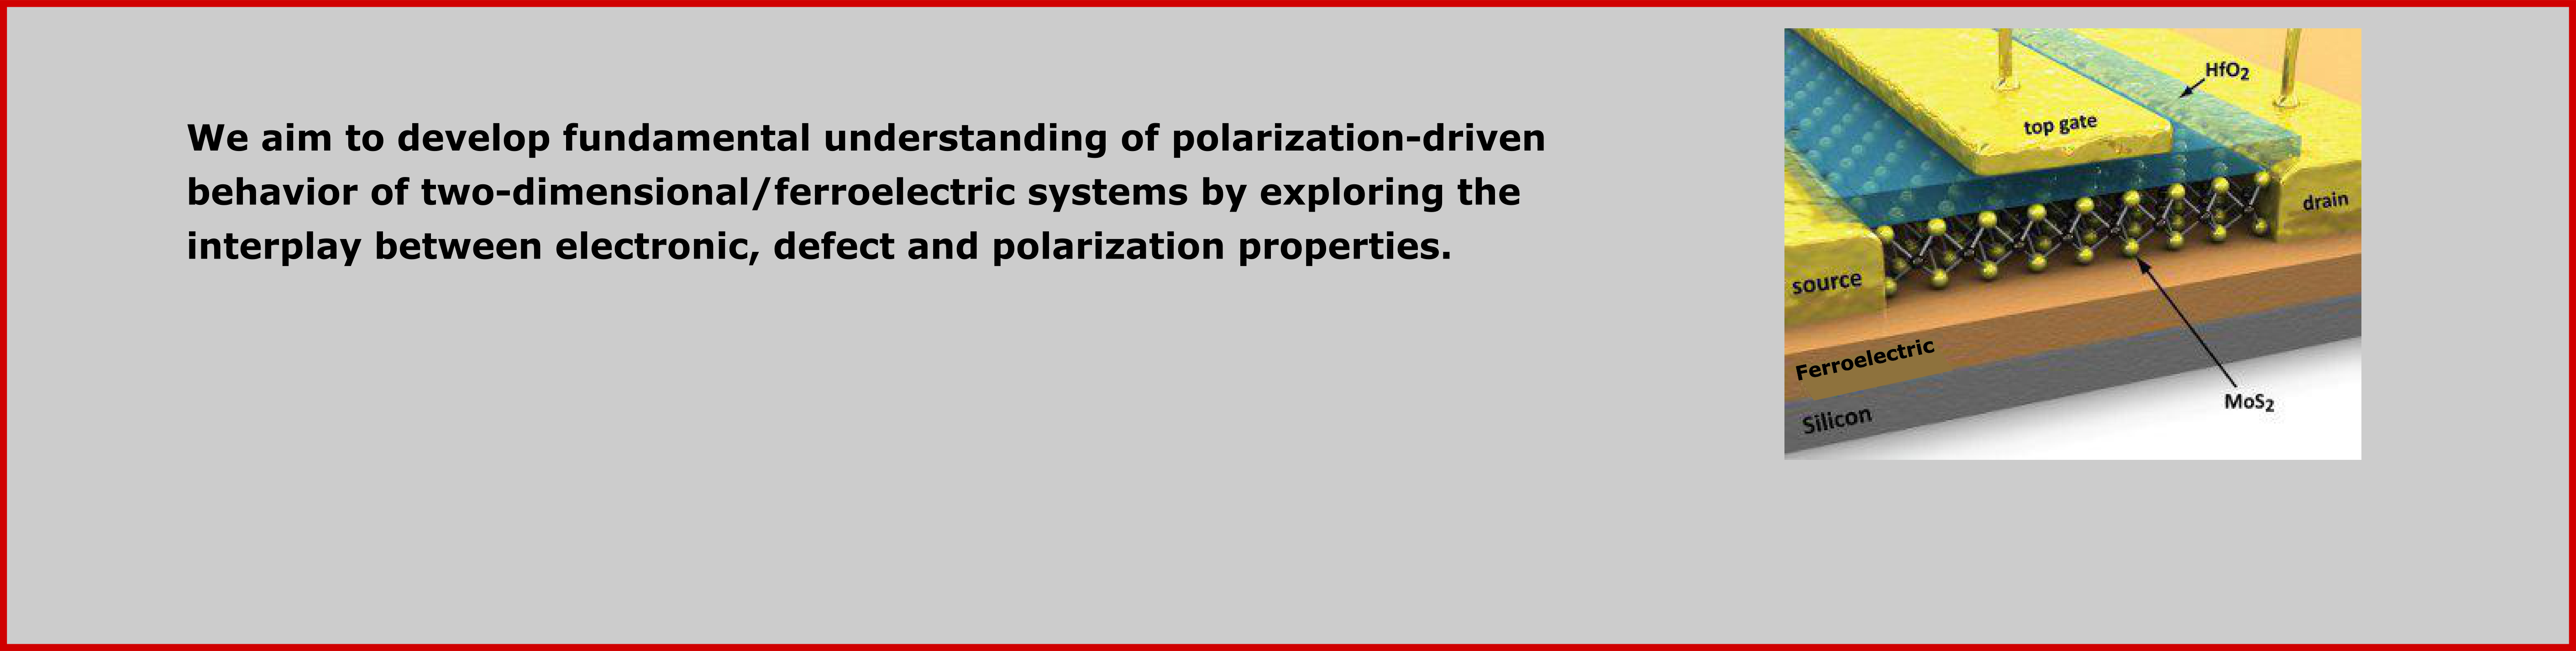 We aim to develop fundamental understanding of polarization-driven behavior of two-dimensional/ferroelectric systems.